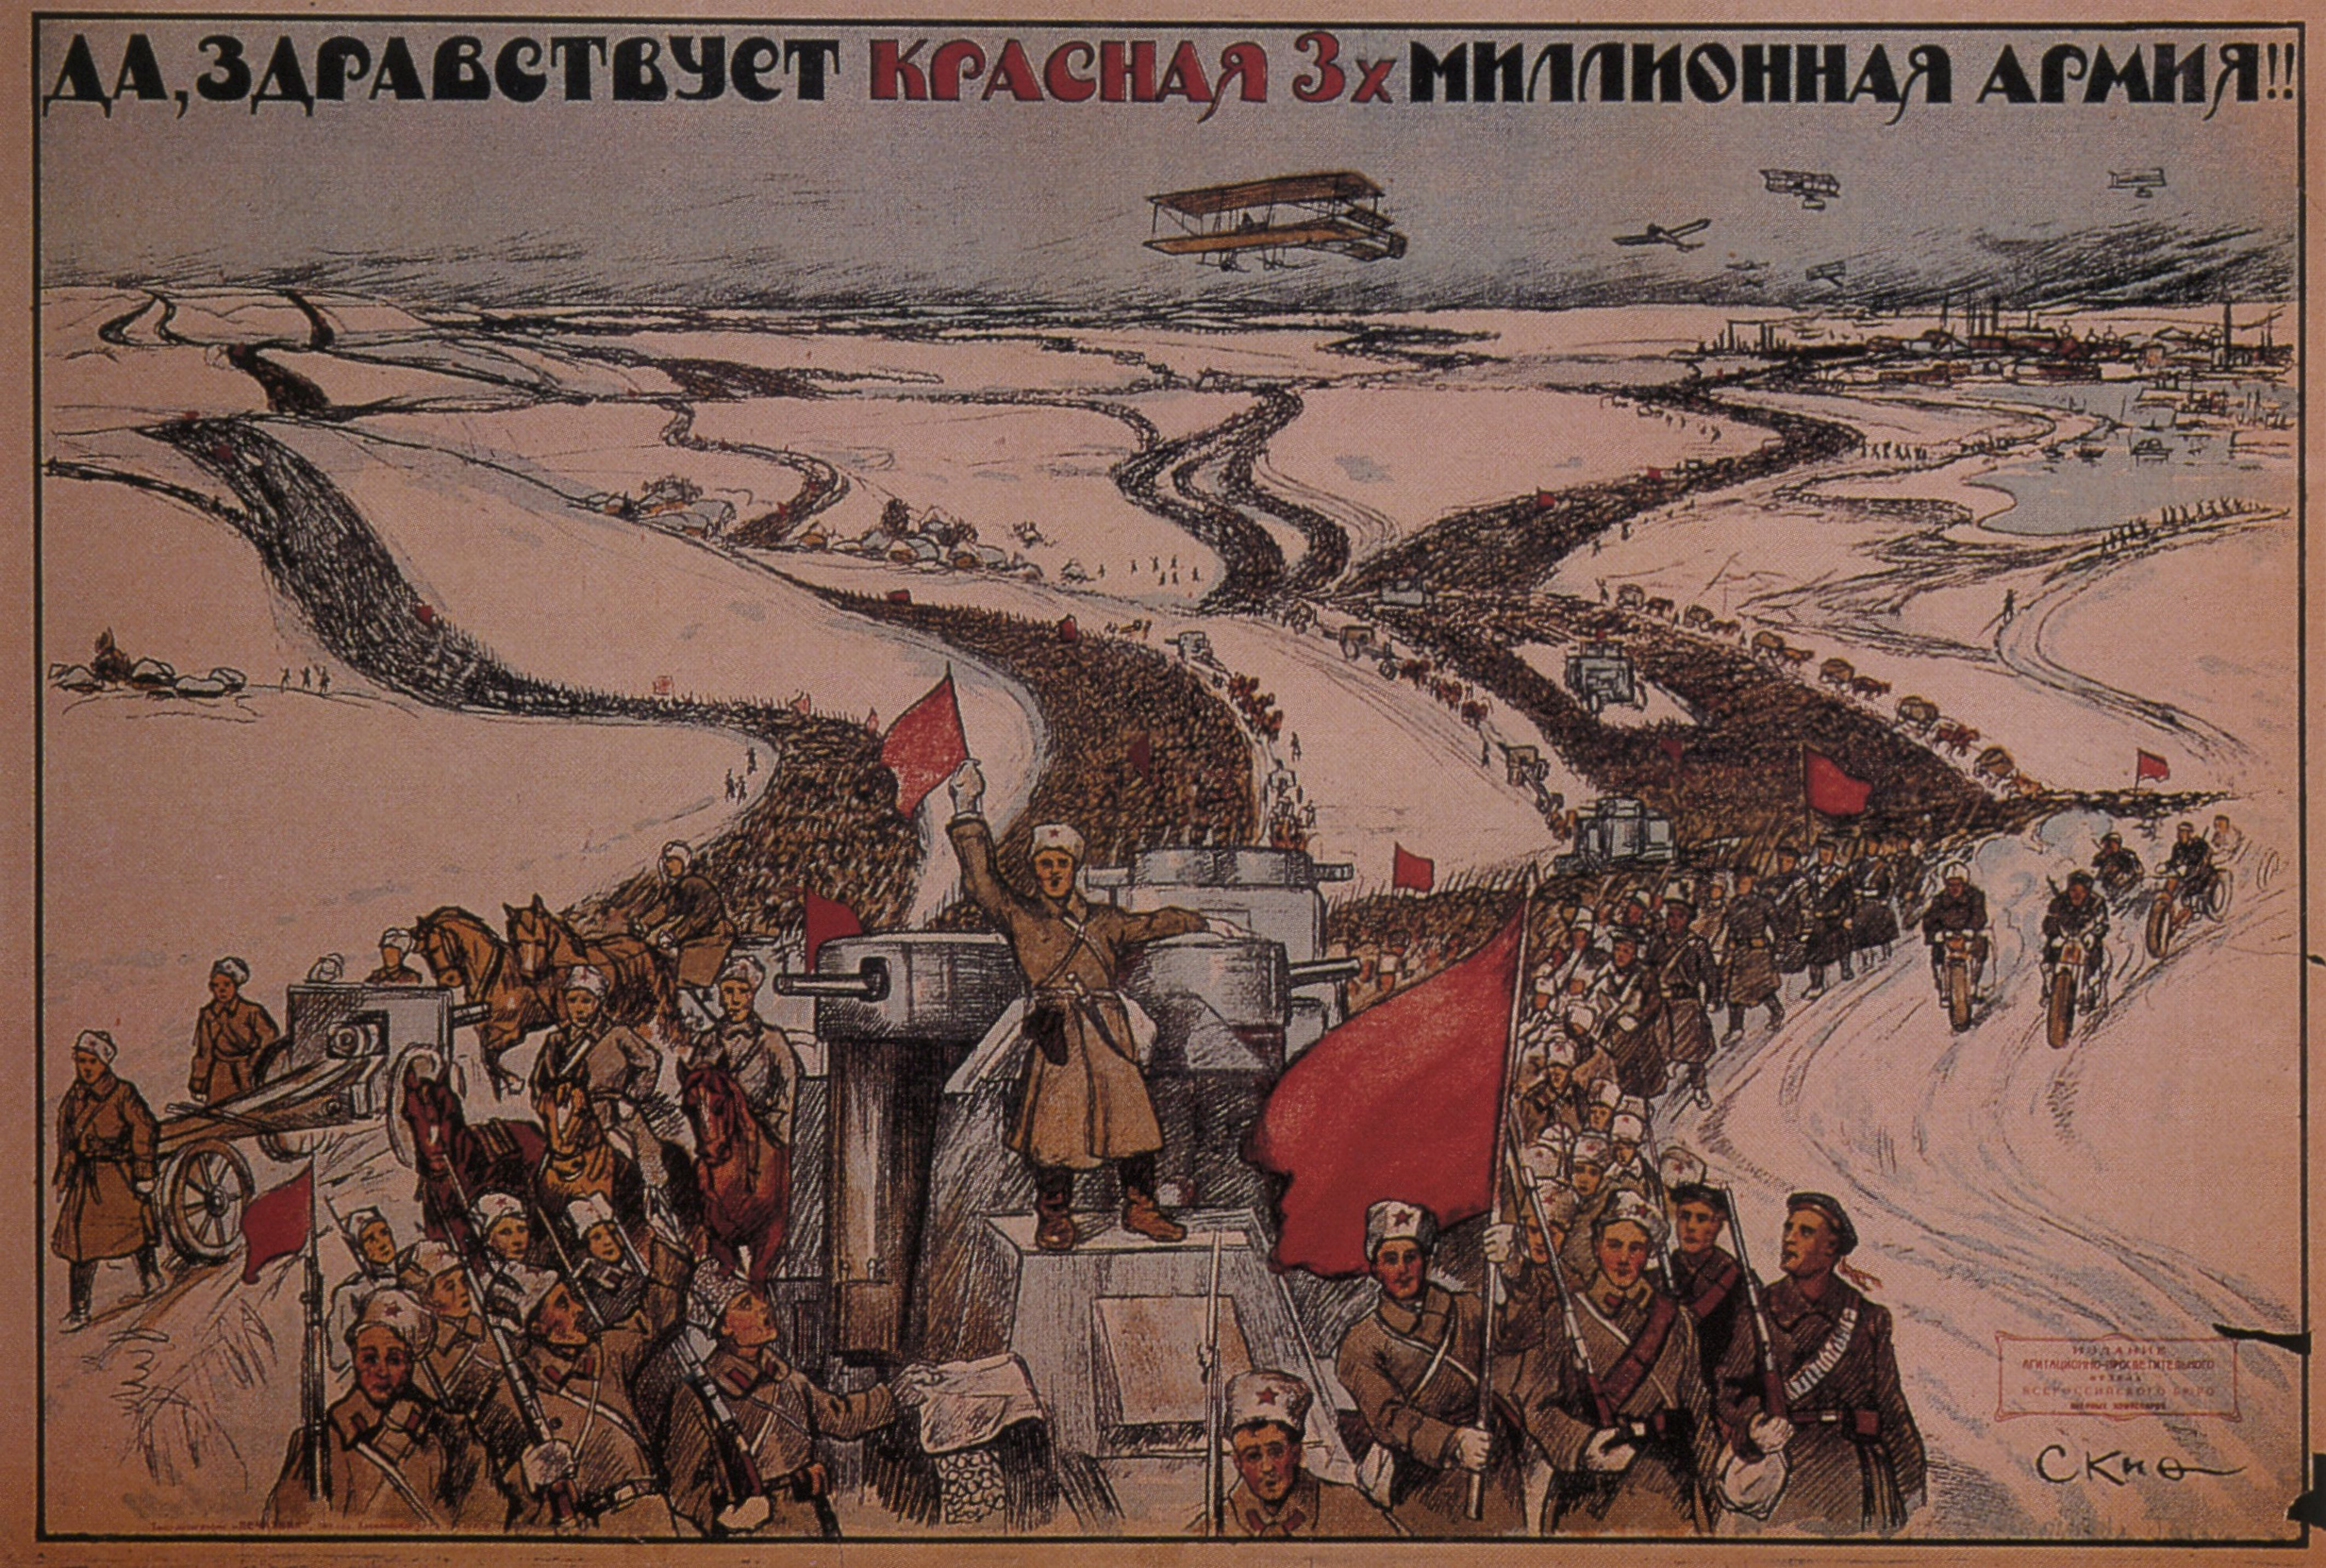 an analysis of the russian civil war and the role of the bolshevik red army Russia in a limited support role  russia between the bolshevik's red army and anti-communist white  the russian civil war.